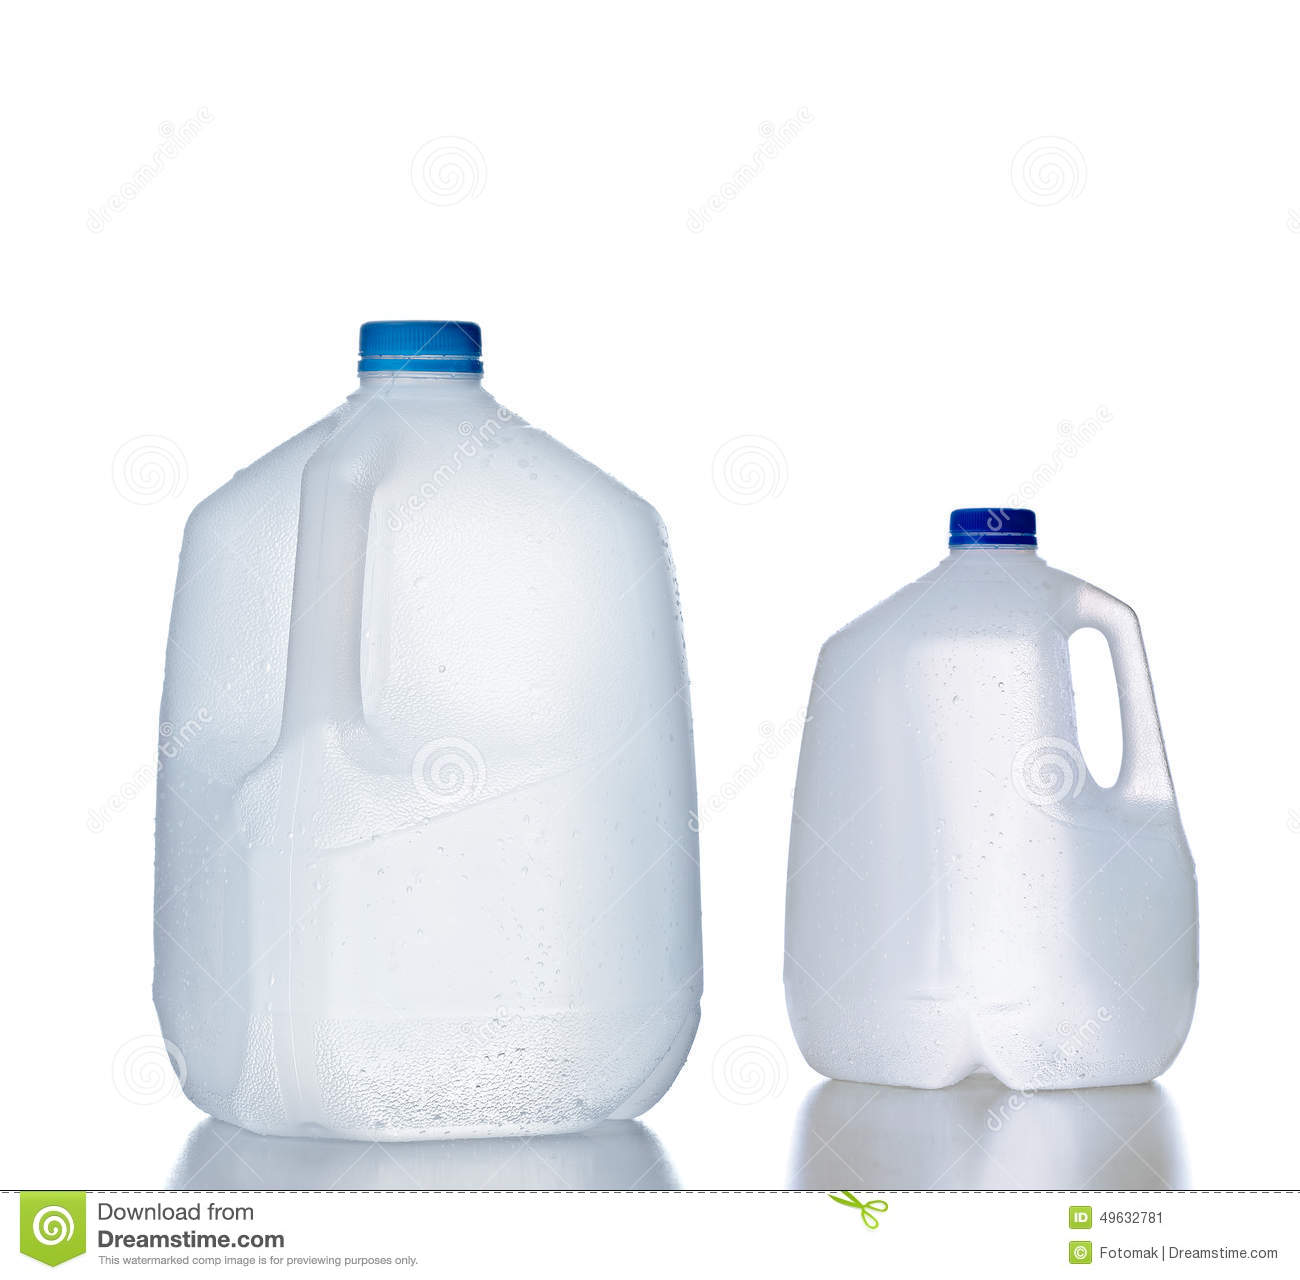 Download Plastic Jugs, Recyclable And Reusable Bottle Jug Stock Image - Image of environmental, disposable: 49632781